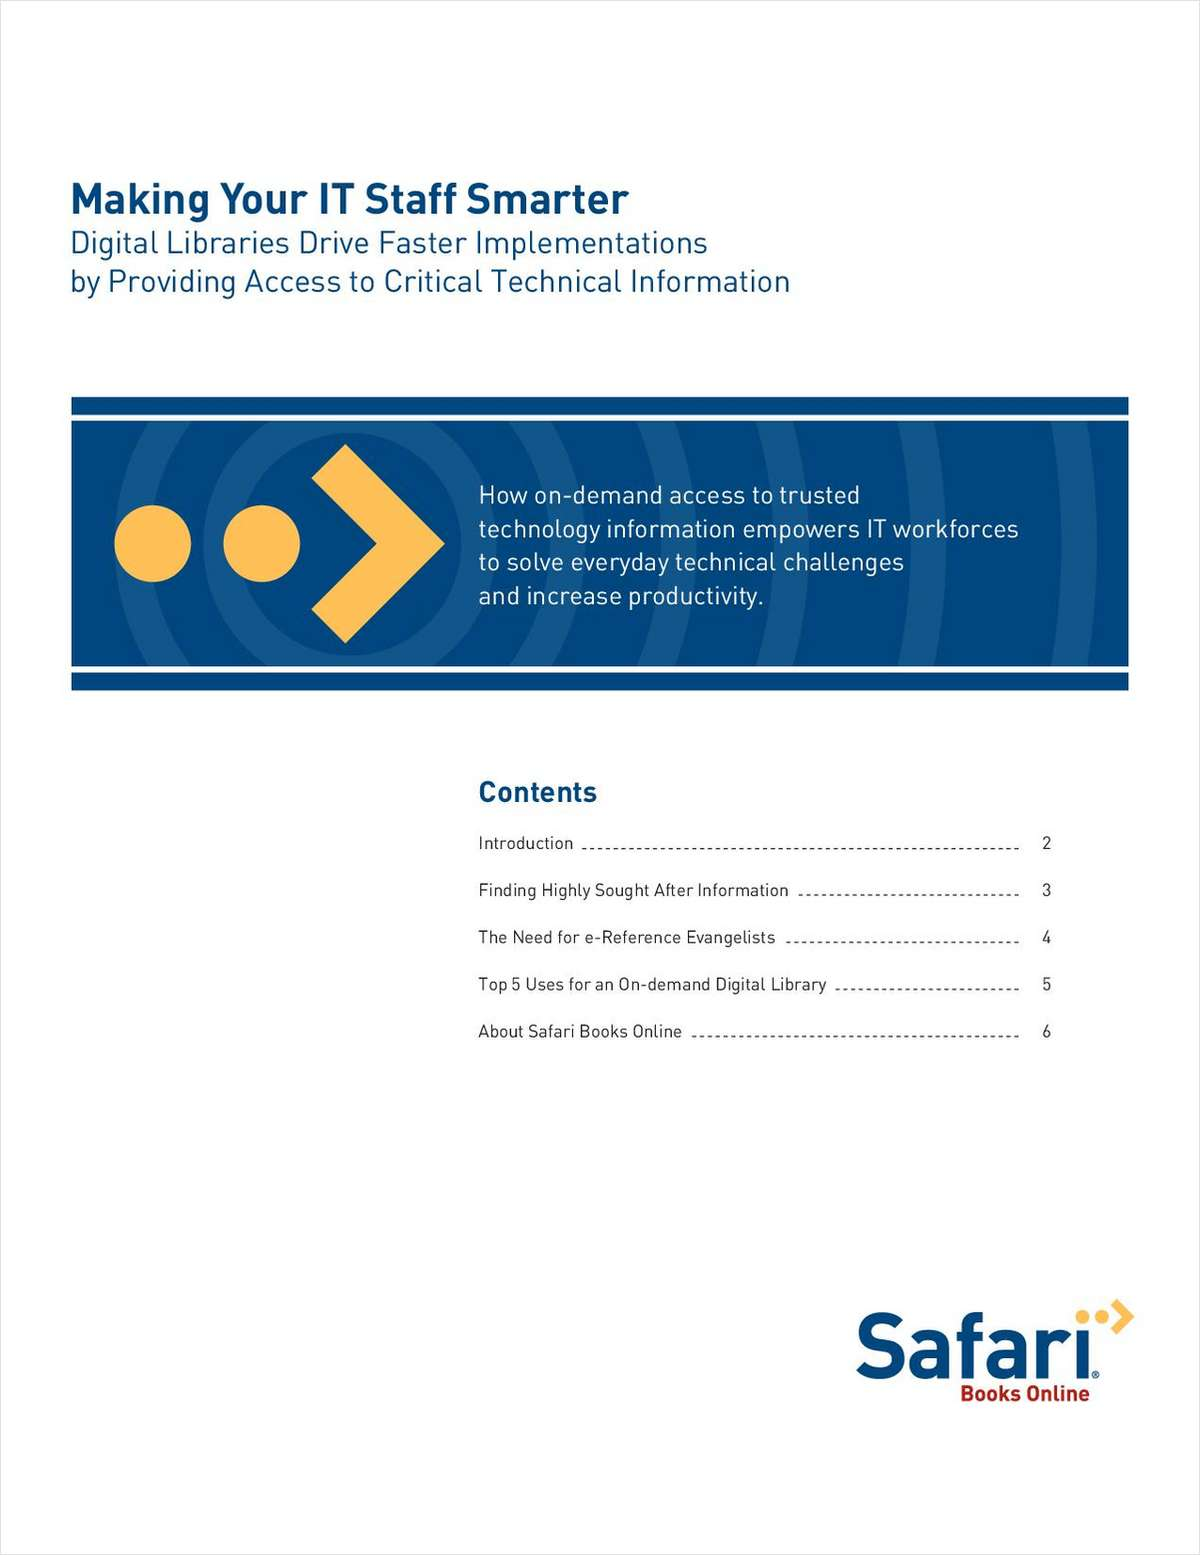 How to Make Your IT Staff Smarter